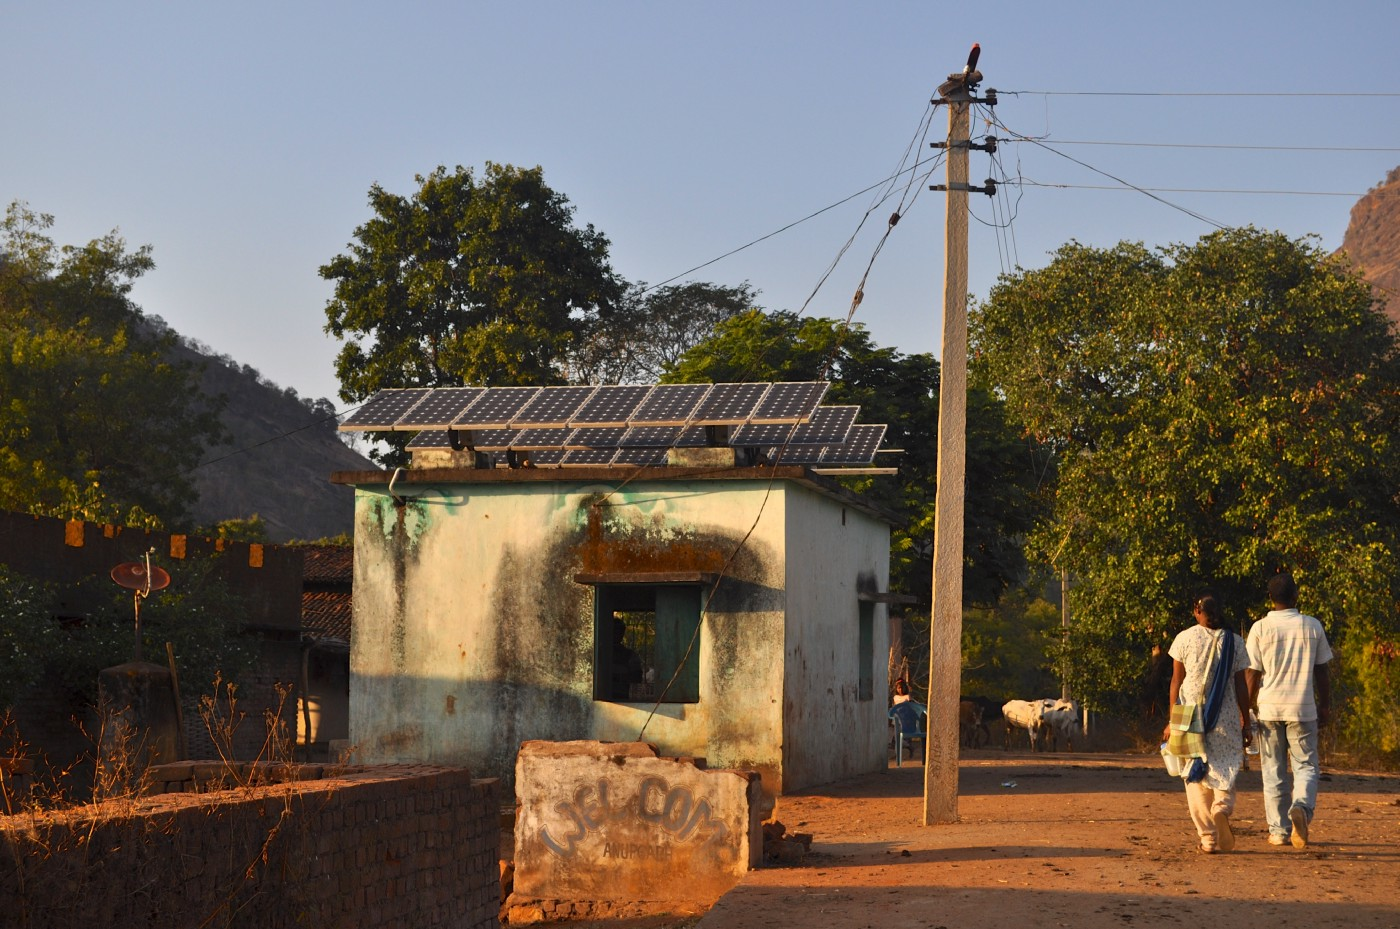 The low cost of solar PV modules makes them ideal for remote power on micro-grids and as distributed, flexible resources to supplement central distribution grids